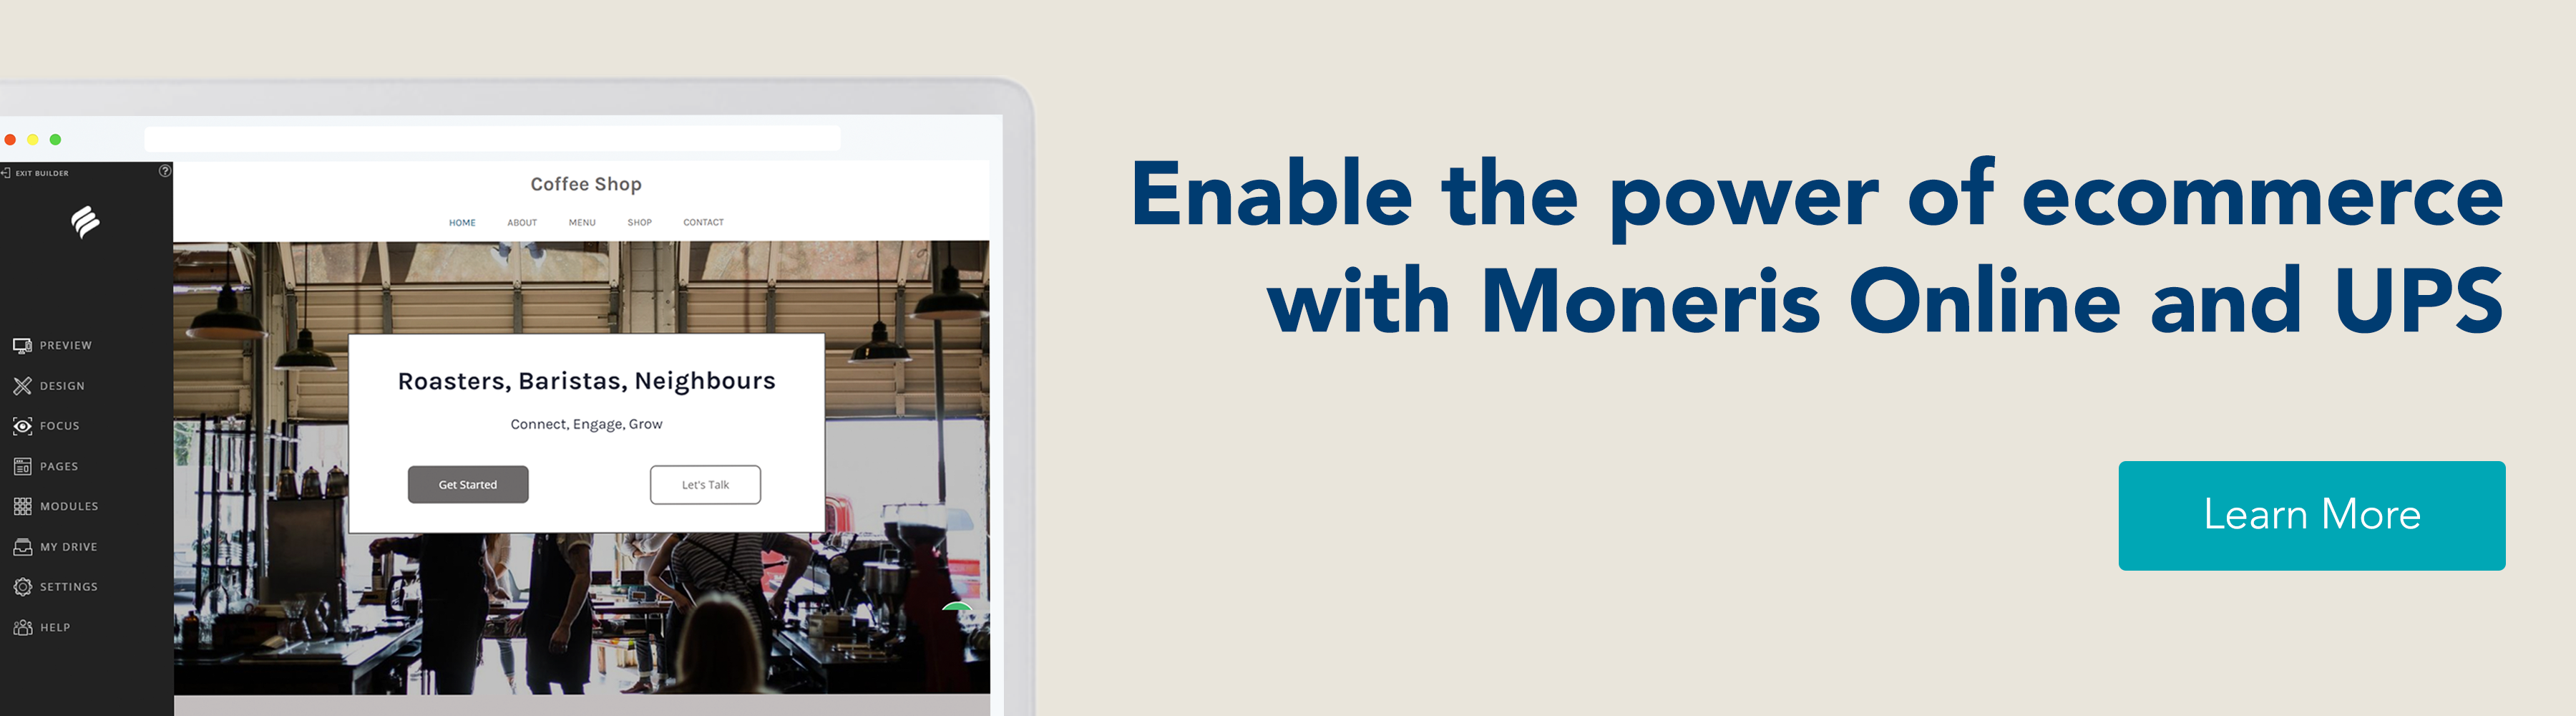 Enable the Power of Ecommerce with Moneris Online and UPS